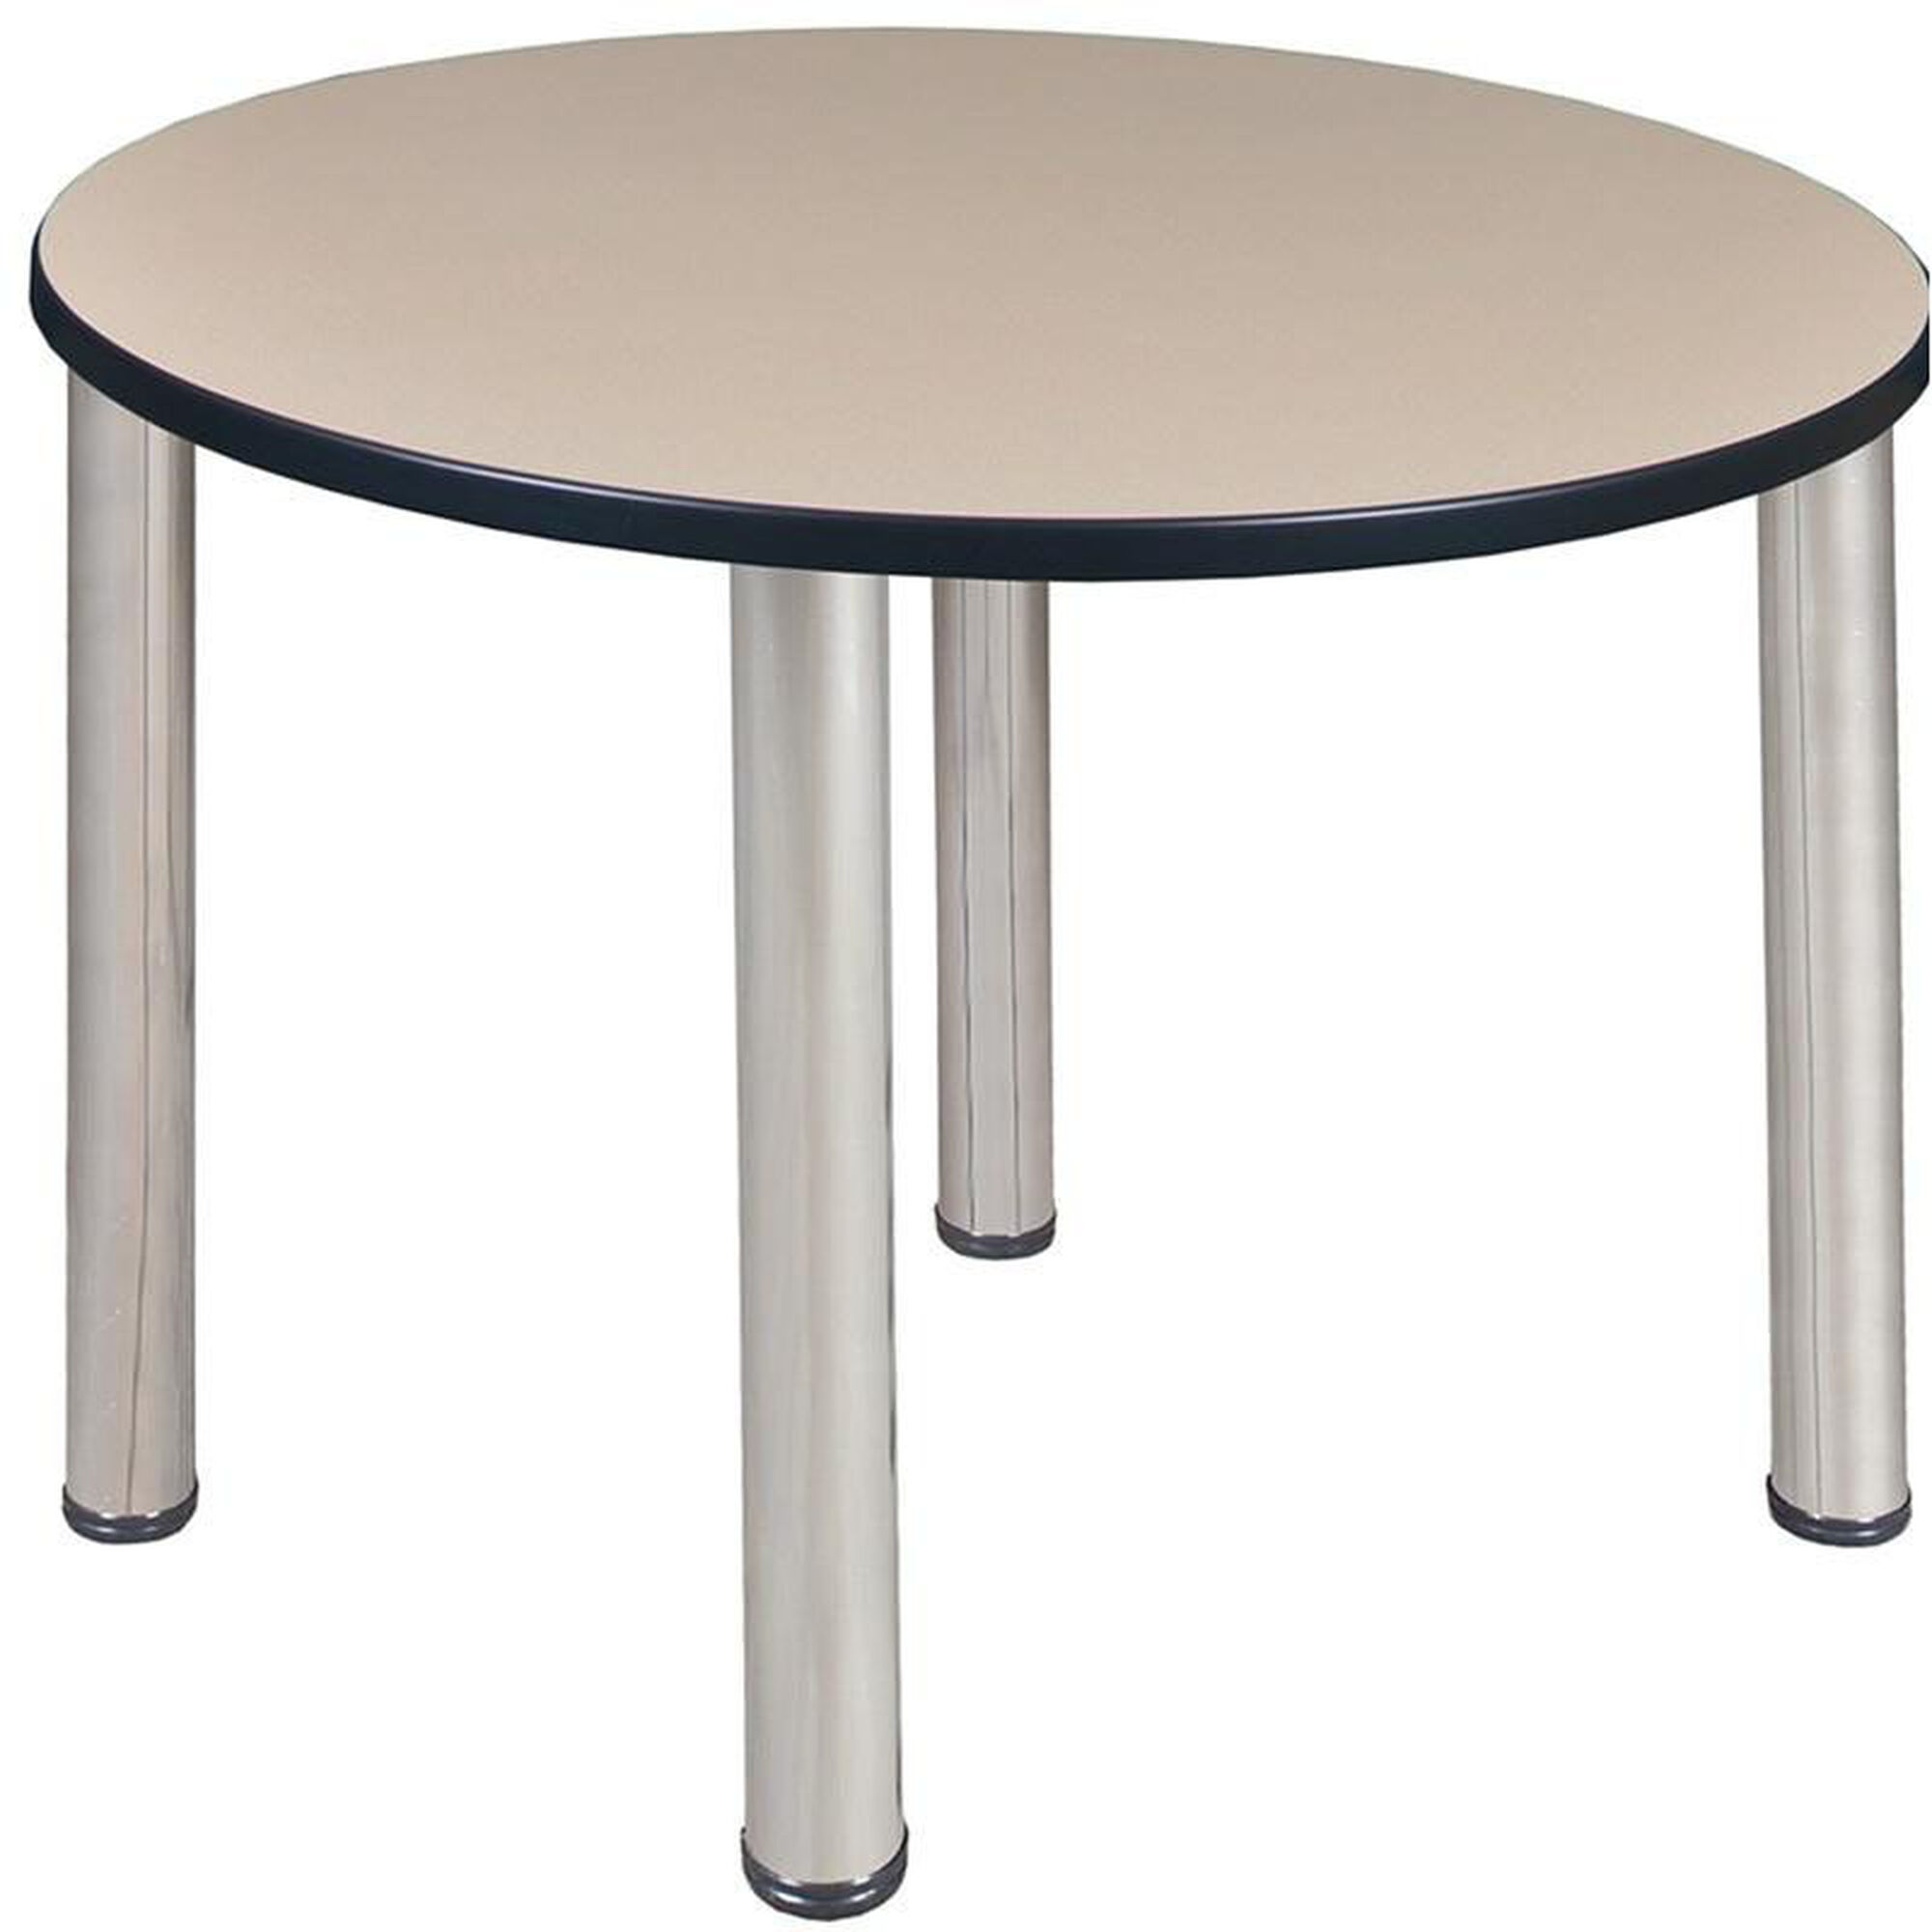 Kee Round Laminate Breakroom Table with PVC Edge - Chrome Legs